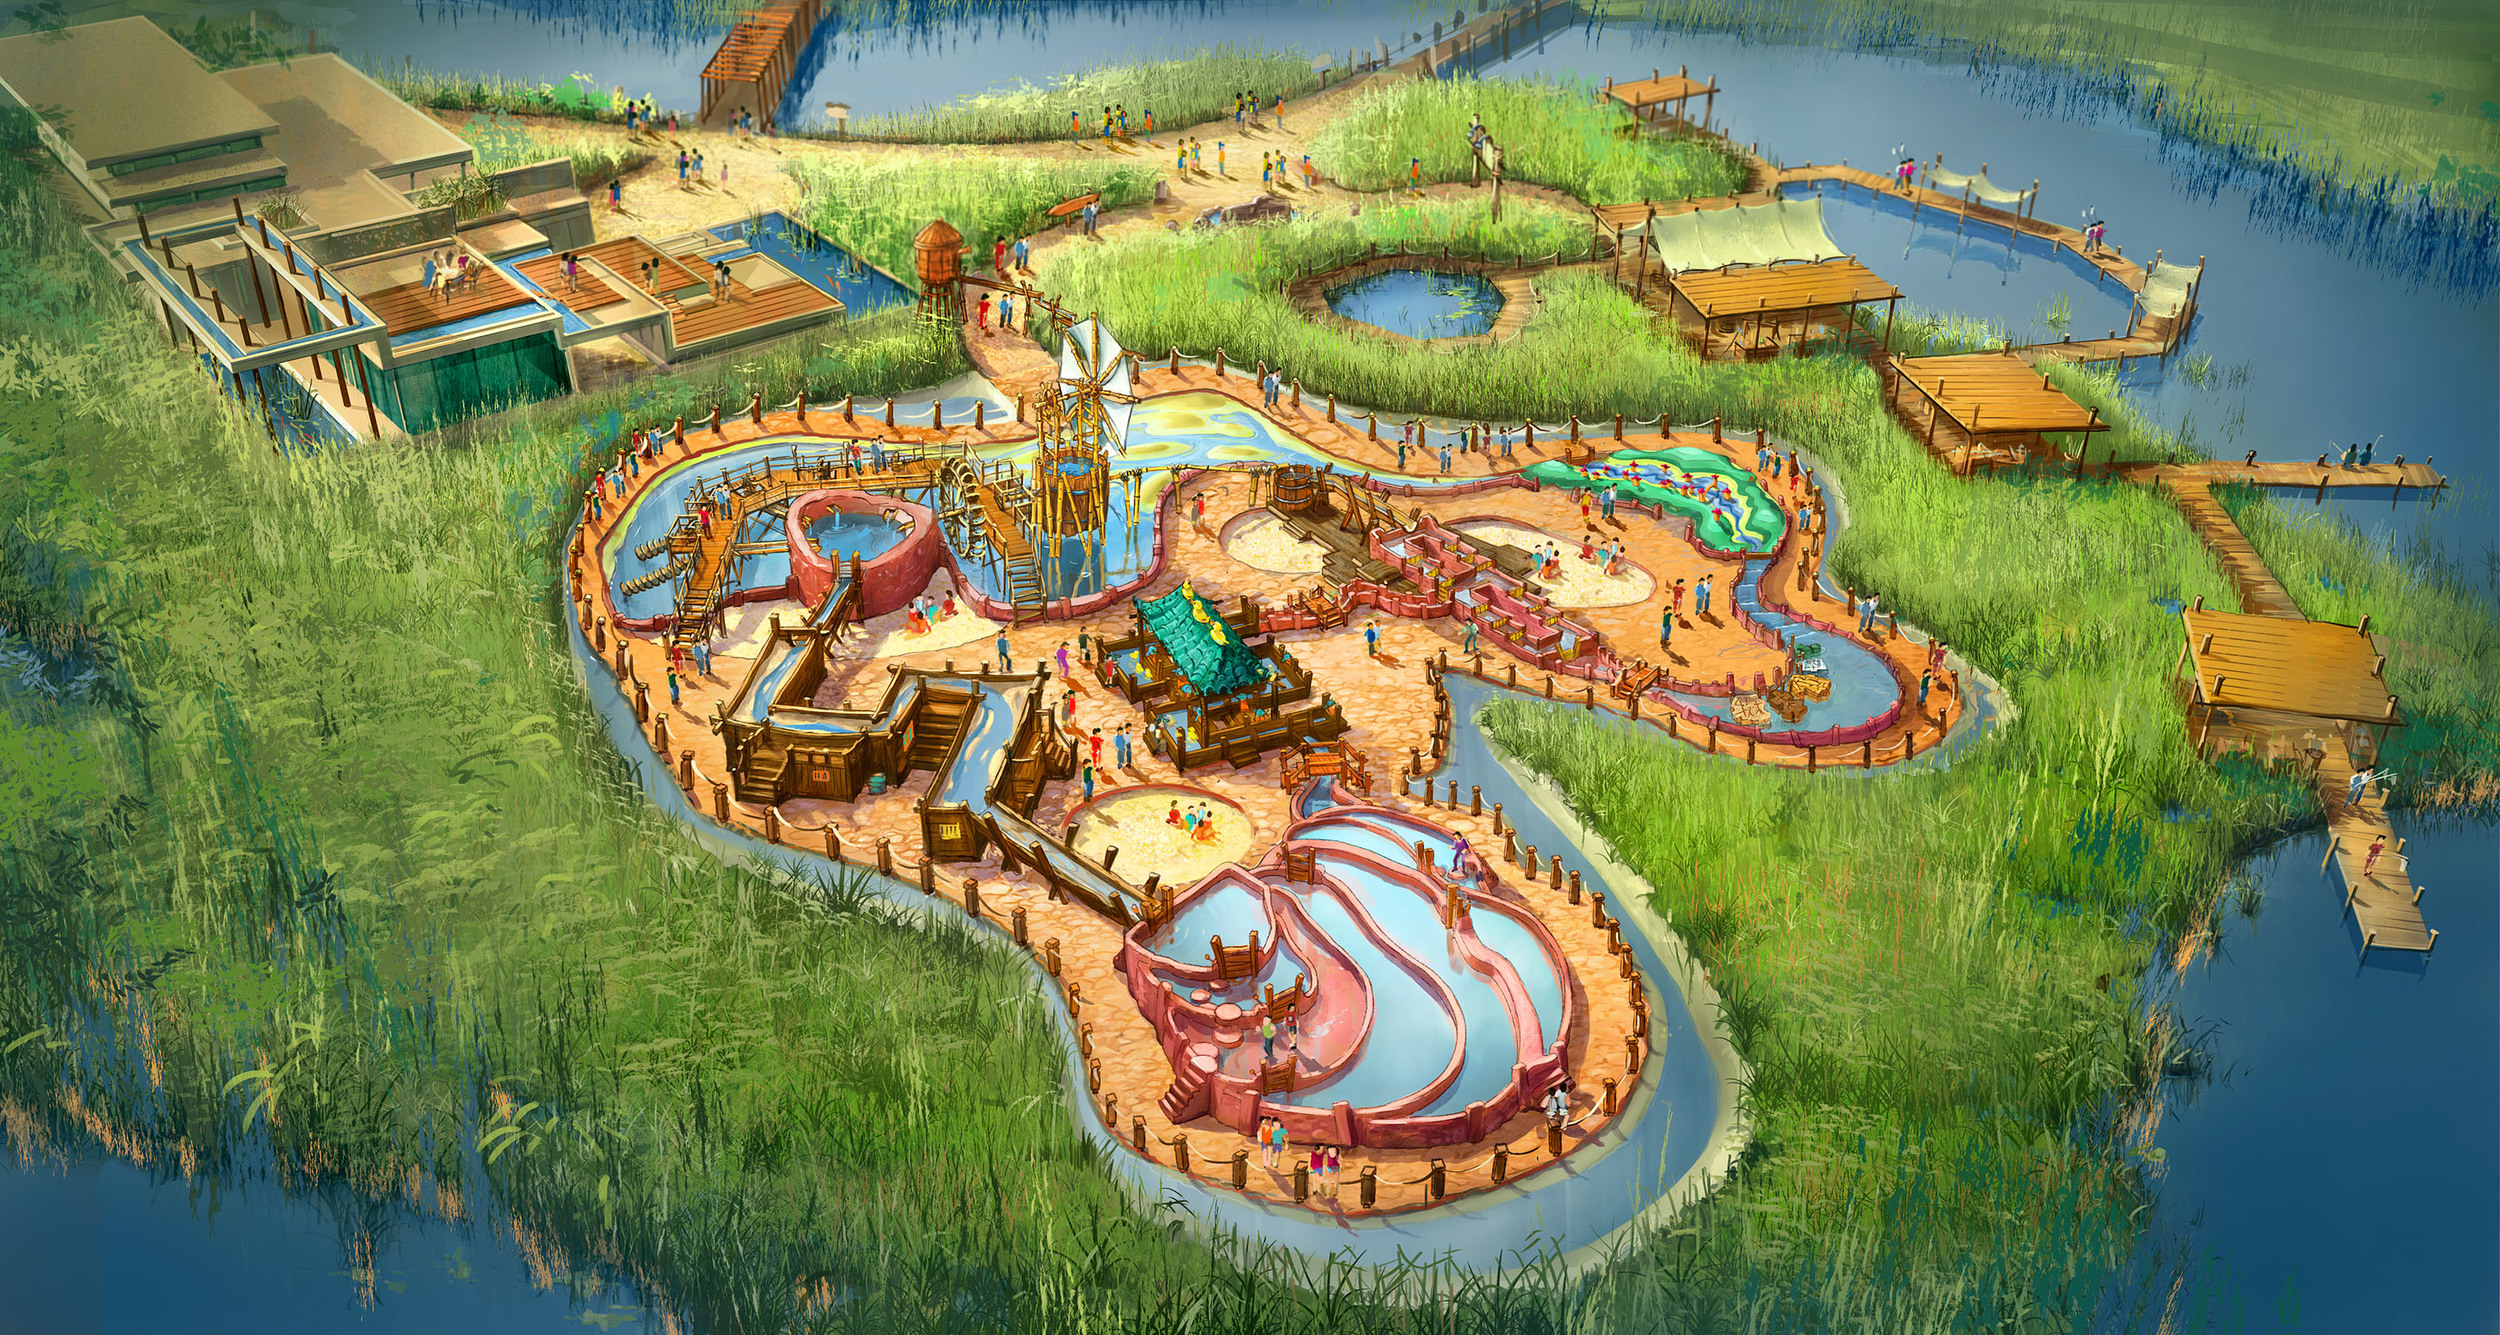 WATER PLAYGROUND HANGZHOU BAY <strong>| Edutainment playground for Hangzhou Bay Wetlands Park, China</strong>